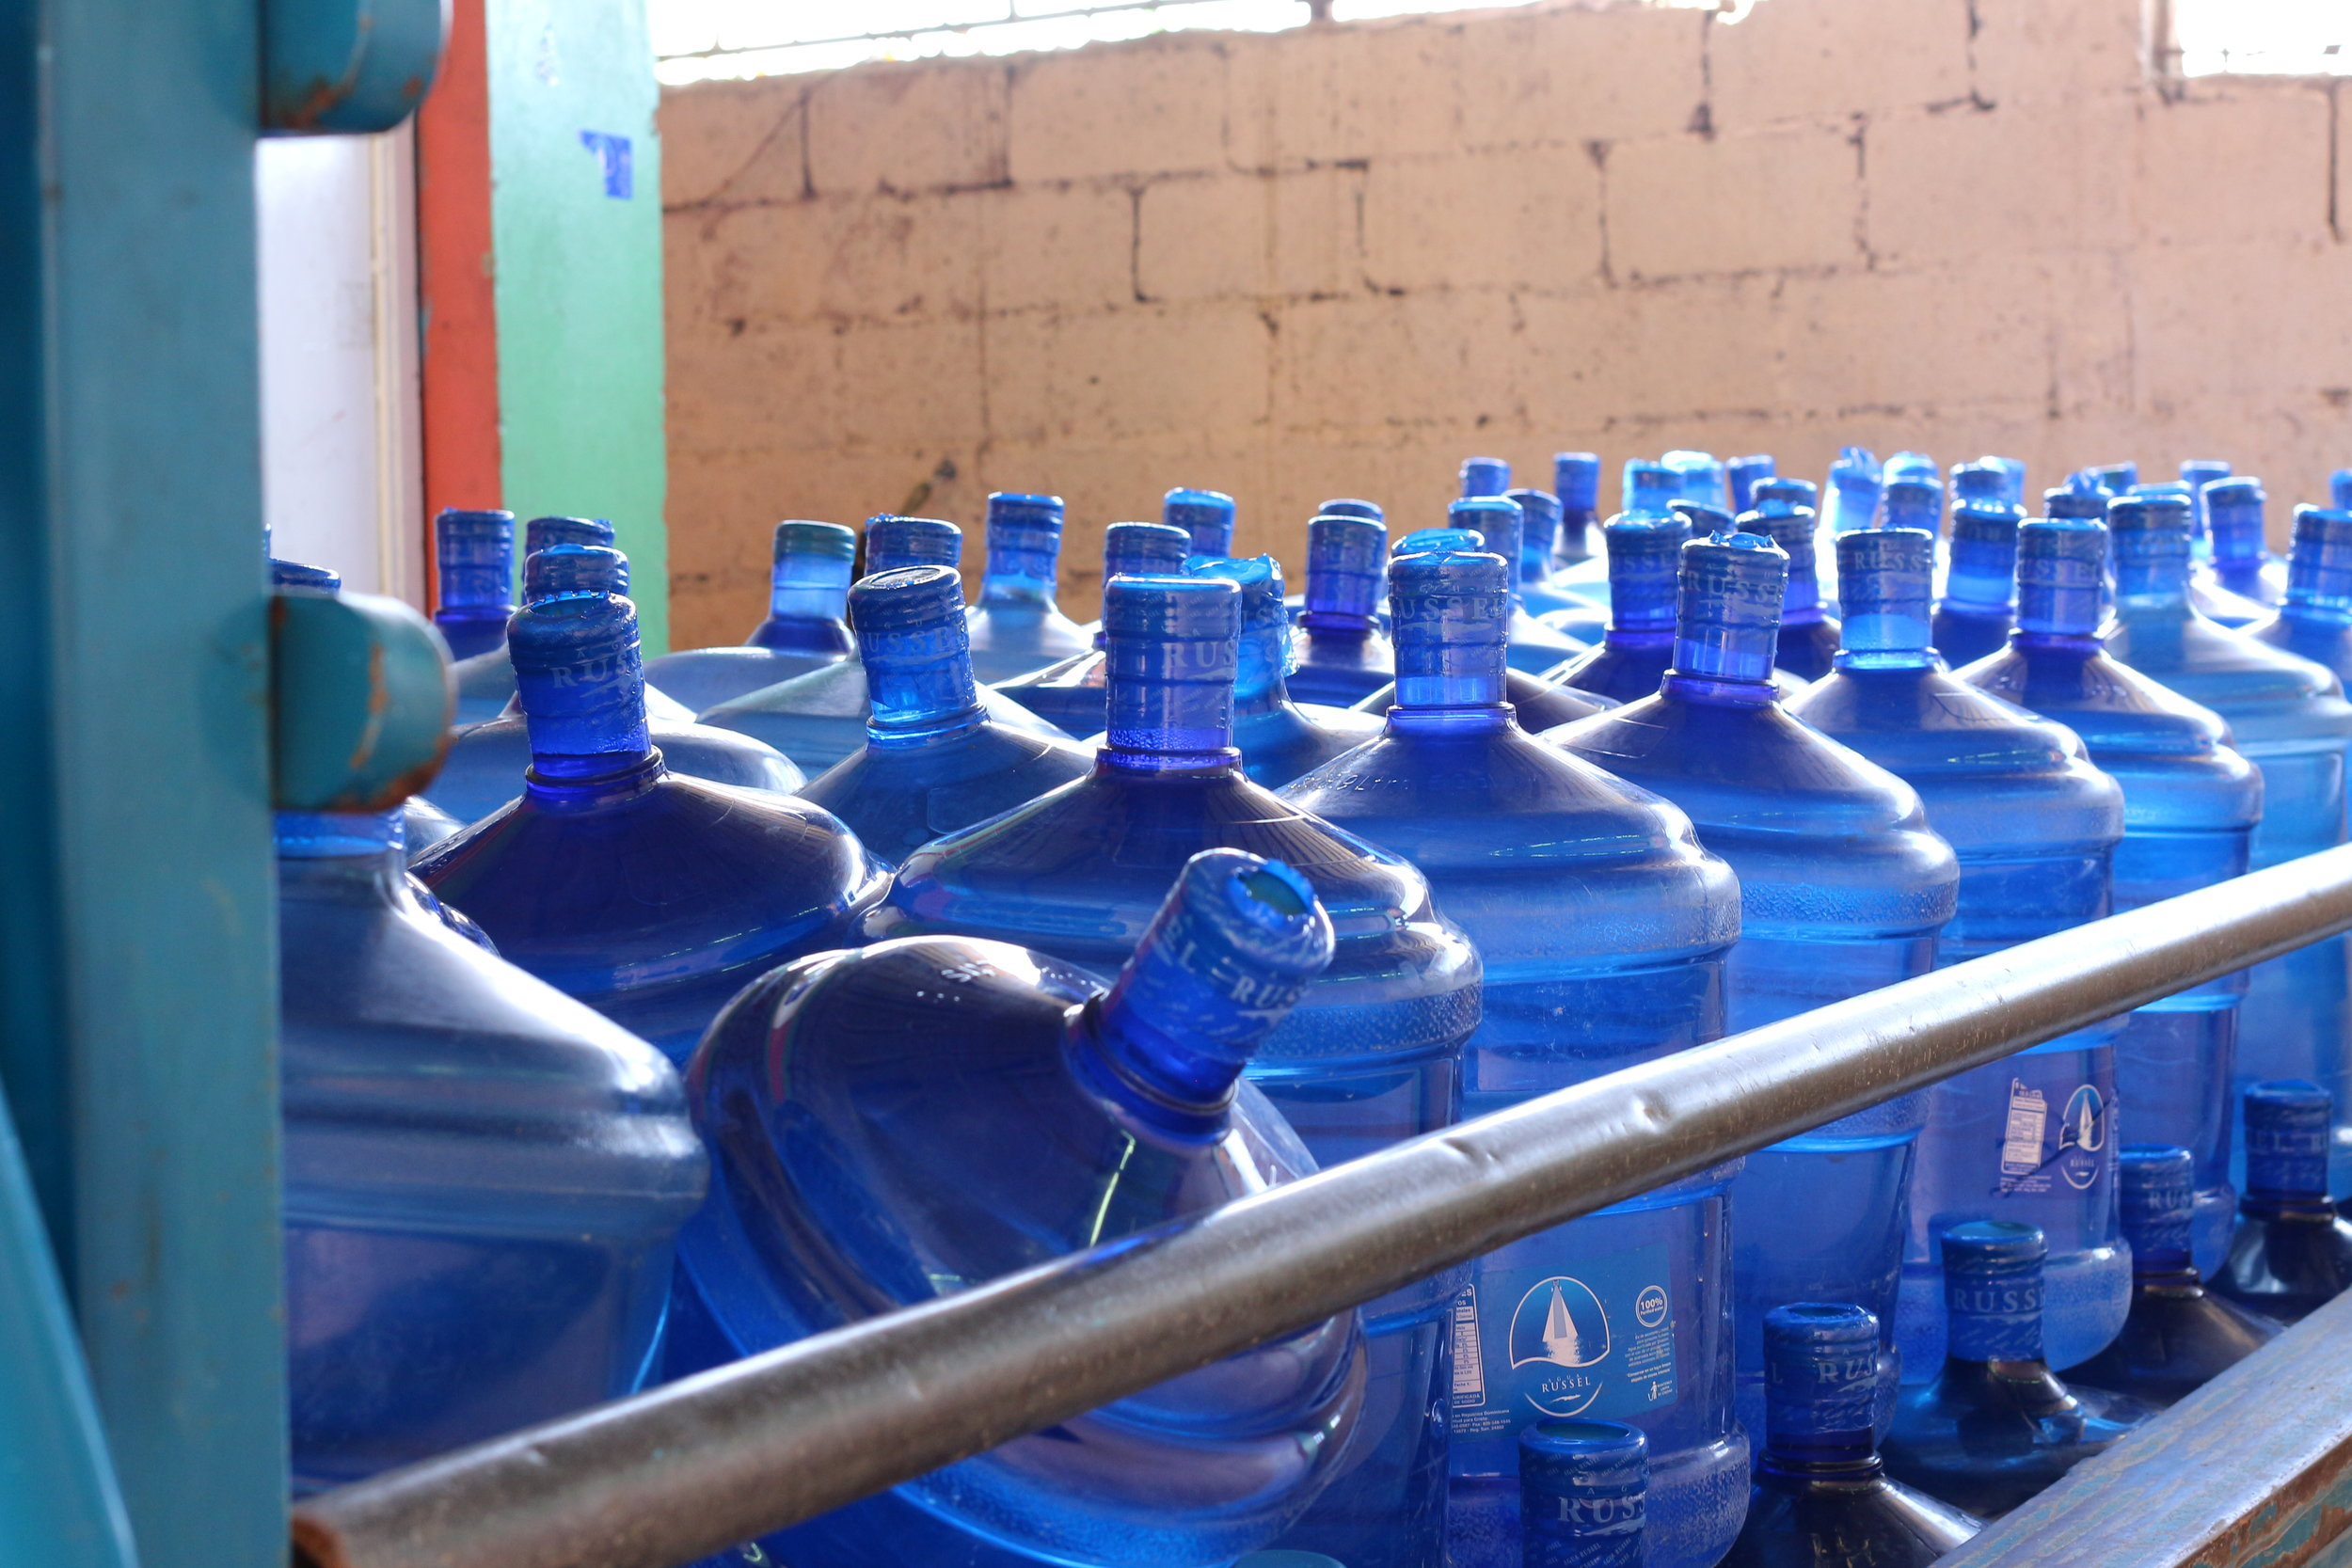 Water ready for delivery to the community